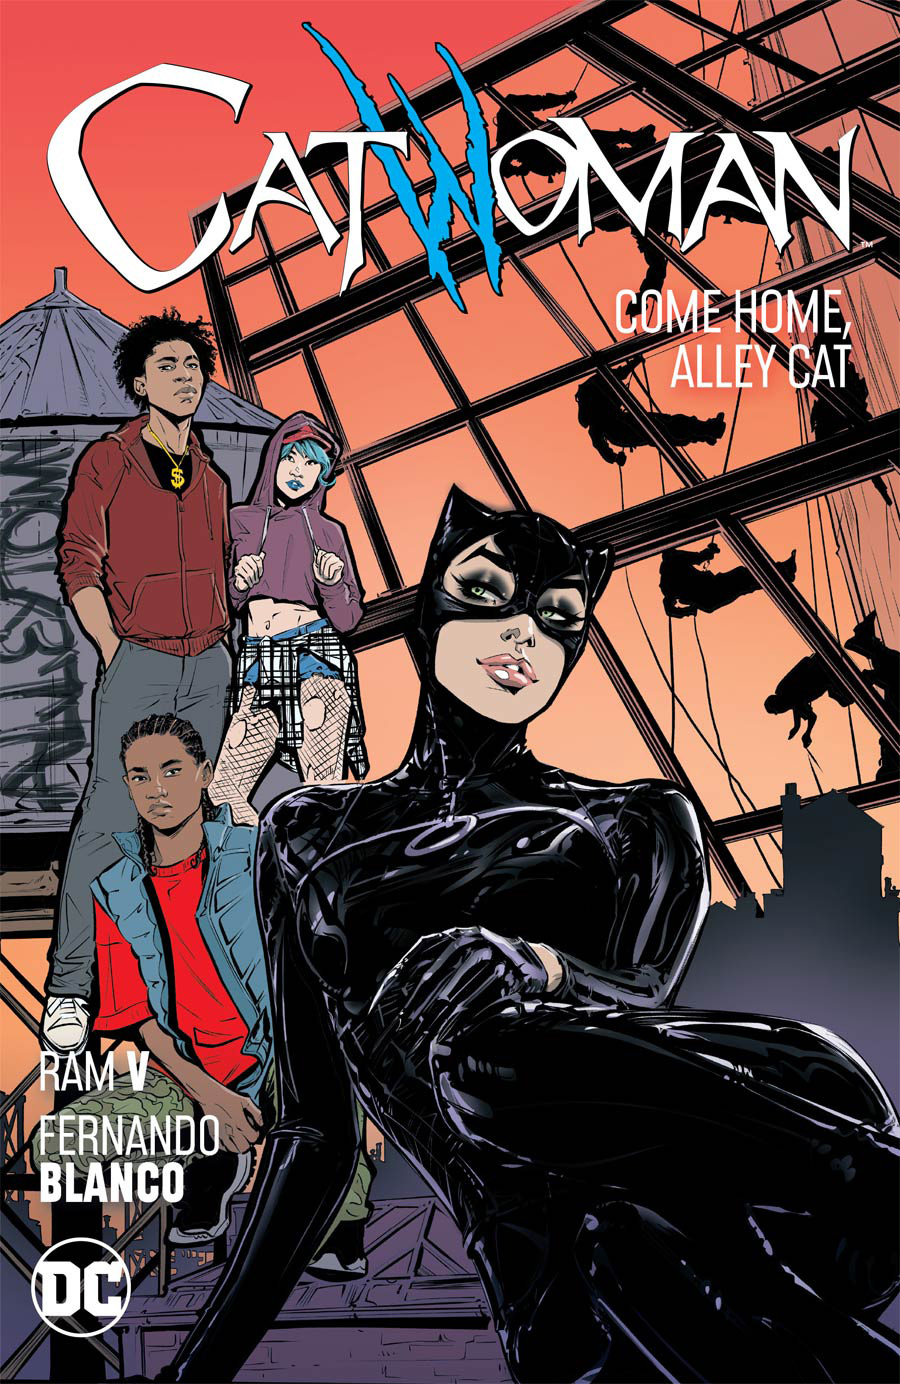 Catwoman (2018) Vol 4 Come Home Alley Cat TP